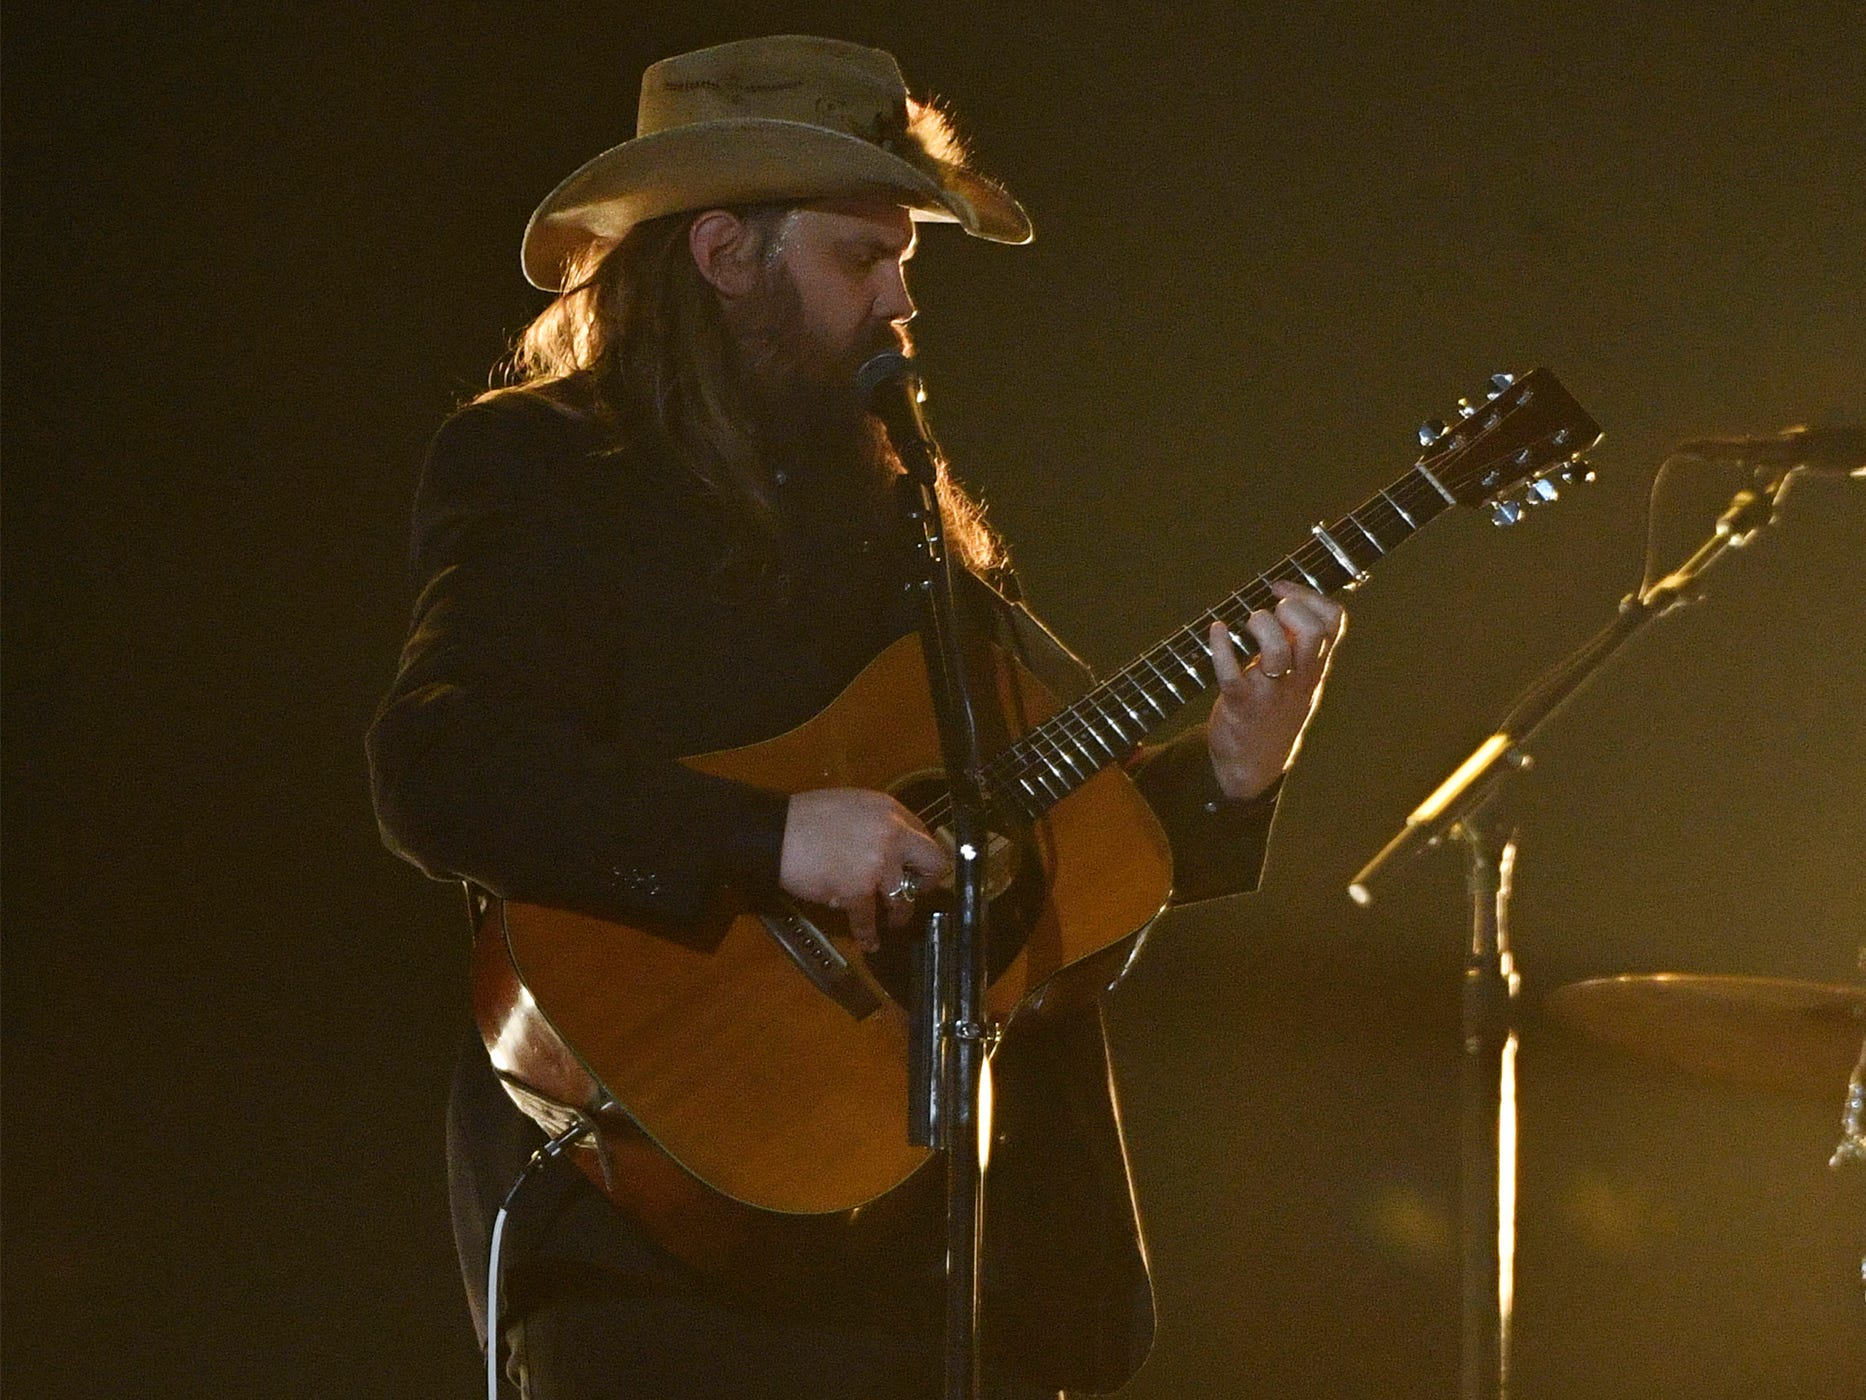 Chris Stapleton performs during the 54TH Academy of Country Music Awards Sunday, April 7, 2019, in Las Vegas, Nev.